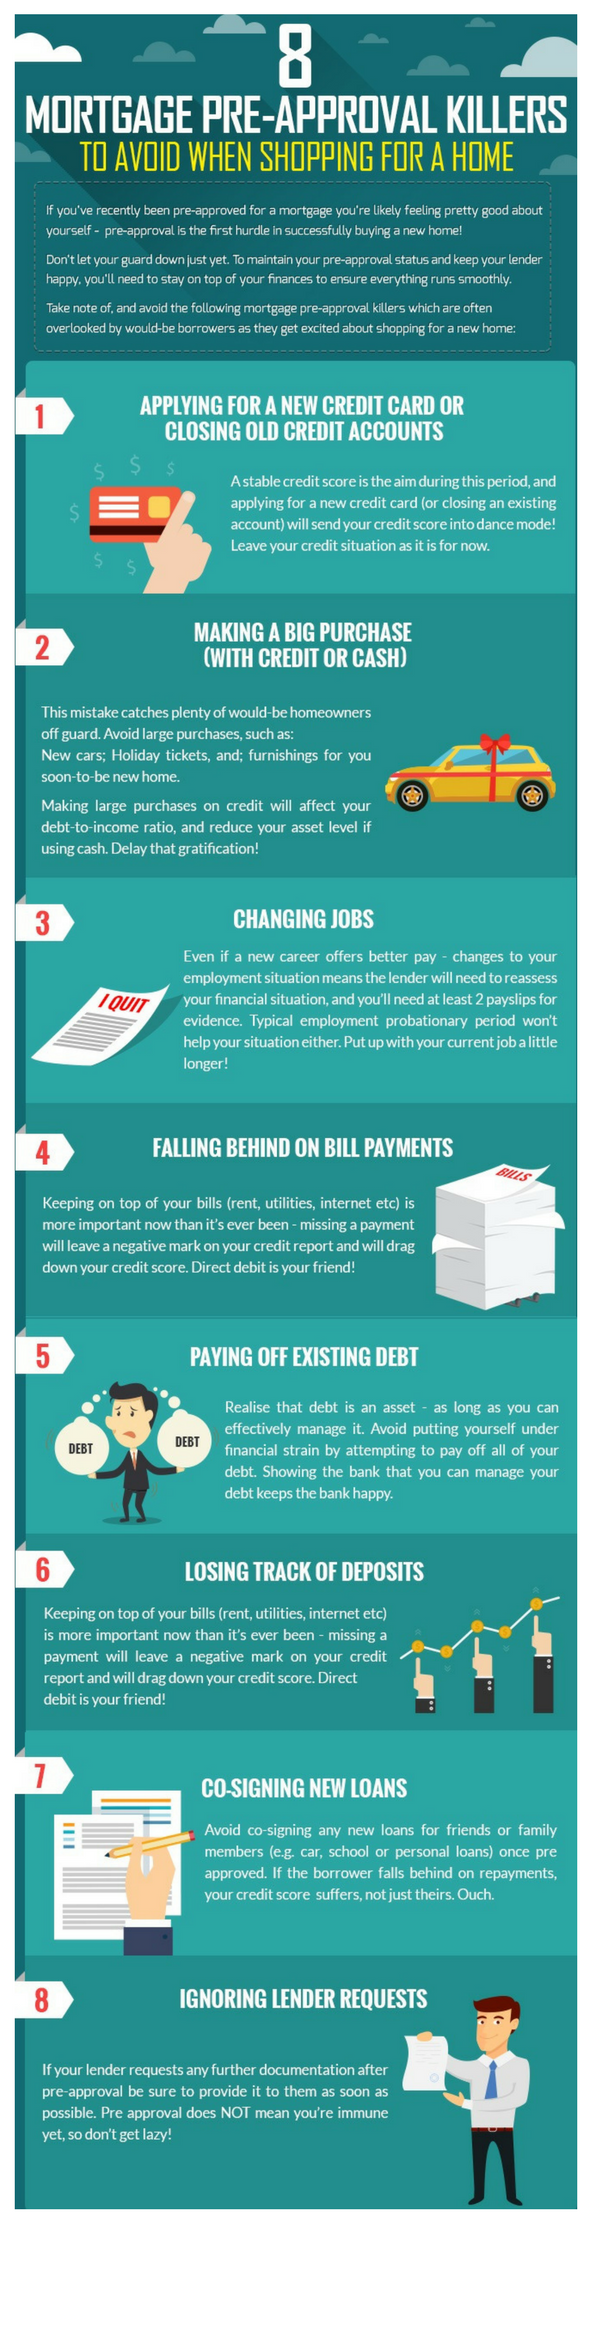 infographic showing 8 things to hurt your chances of getting pre-approved